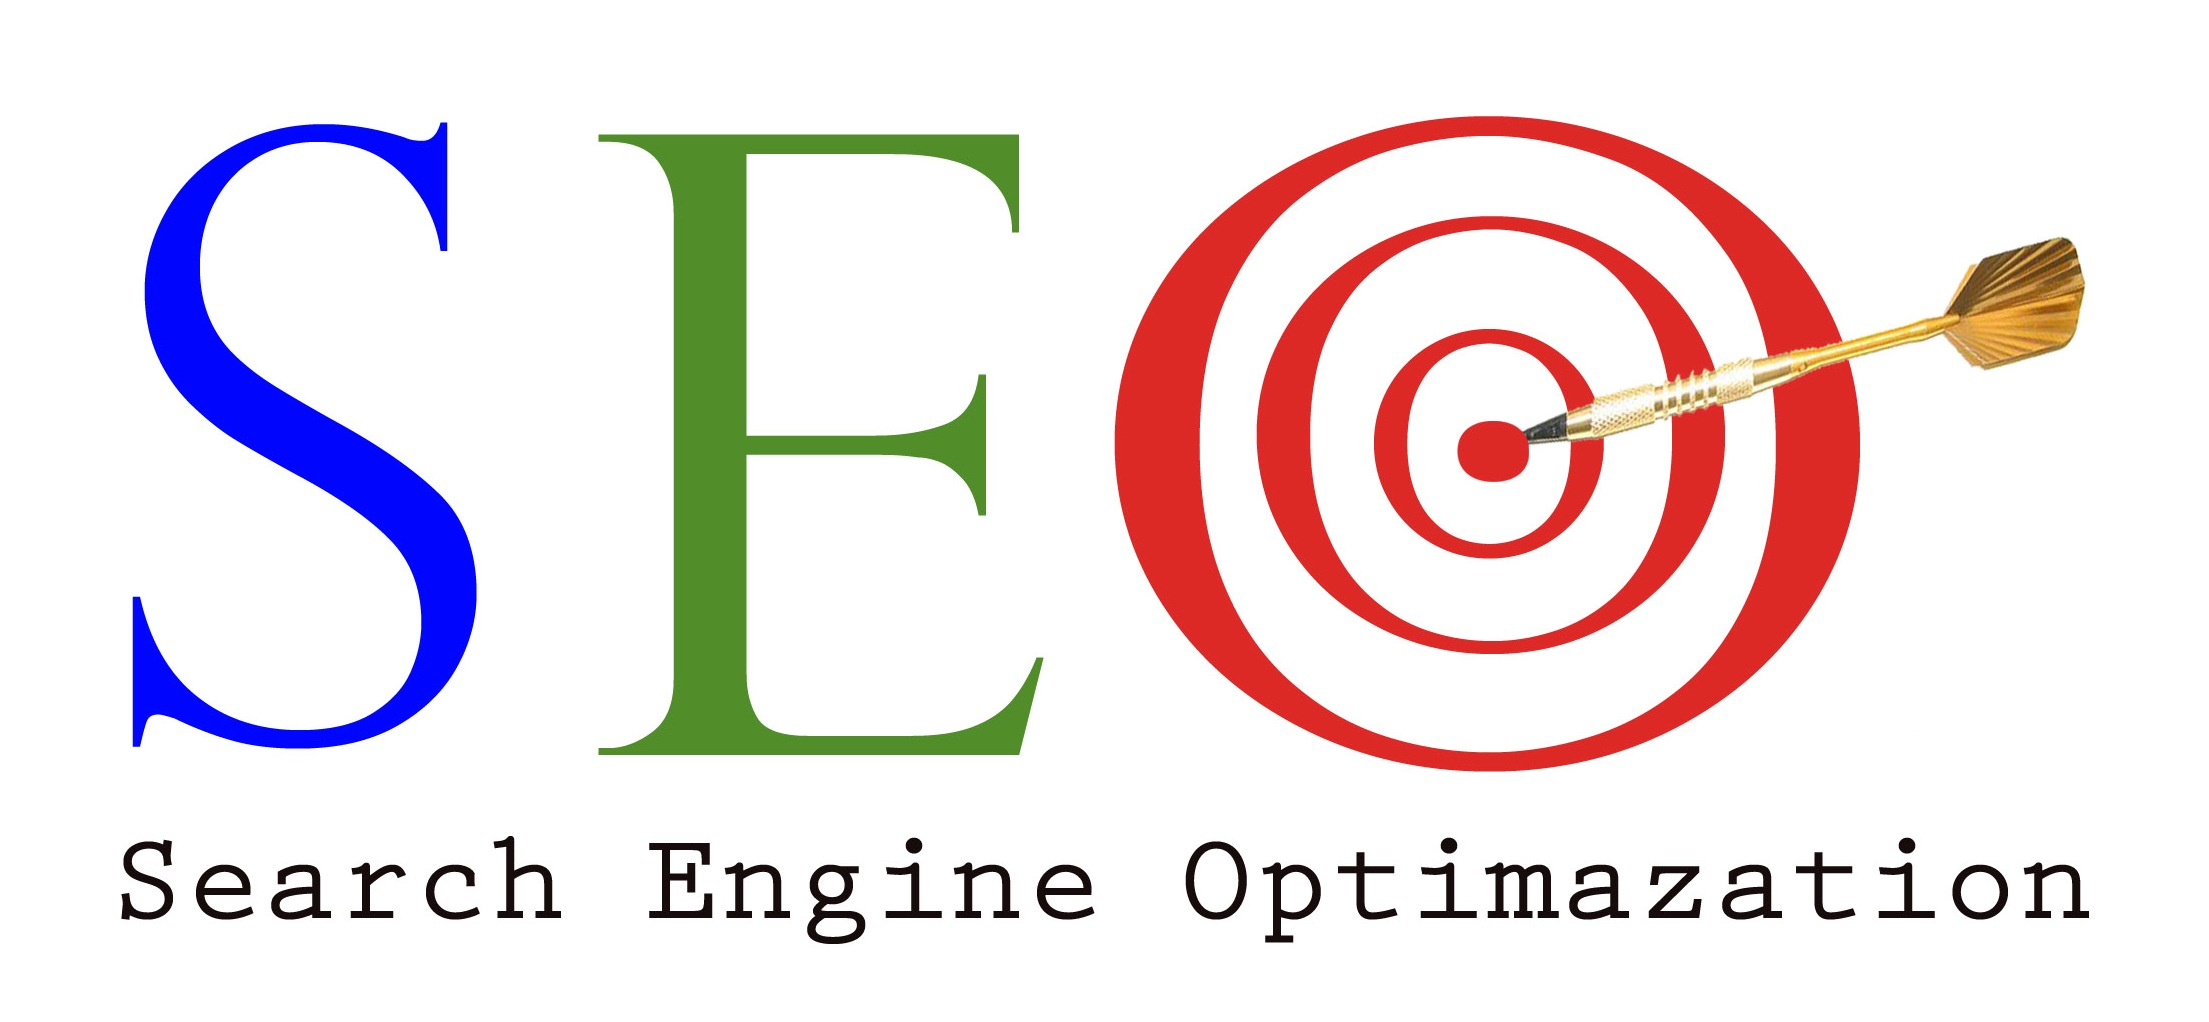 google search engine optimization: